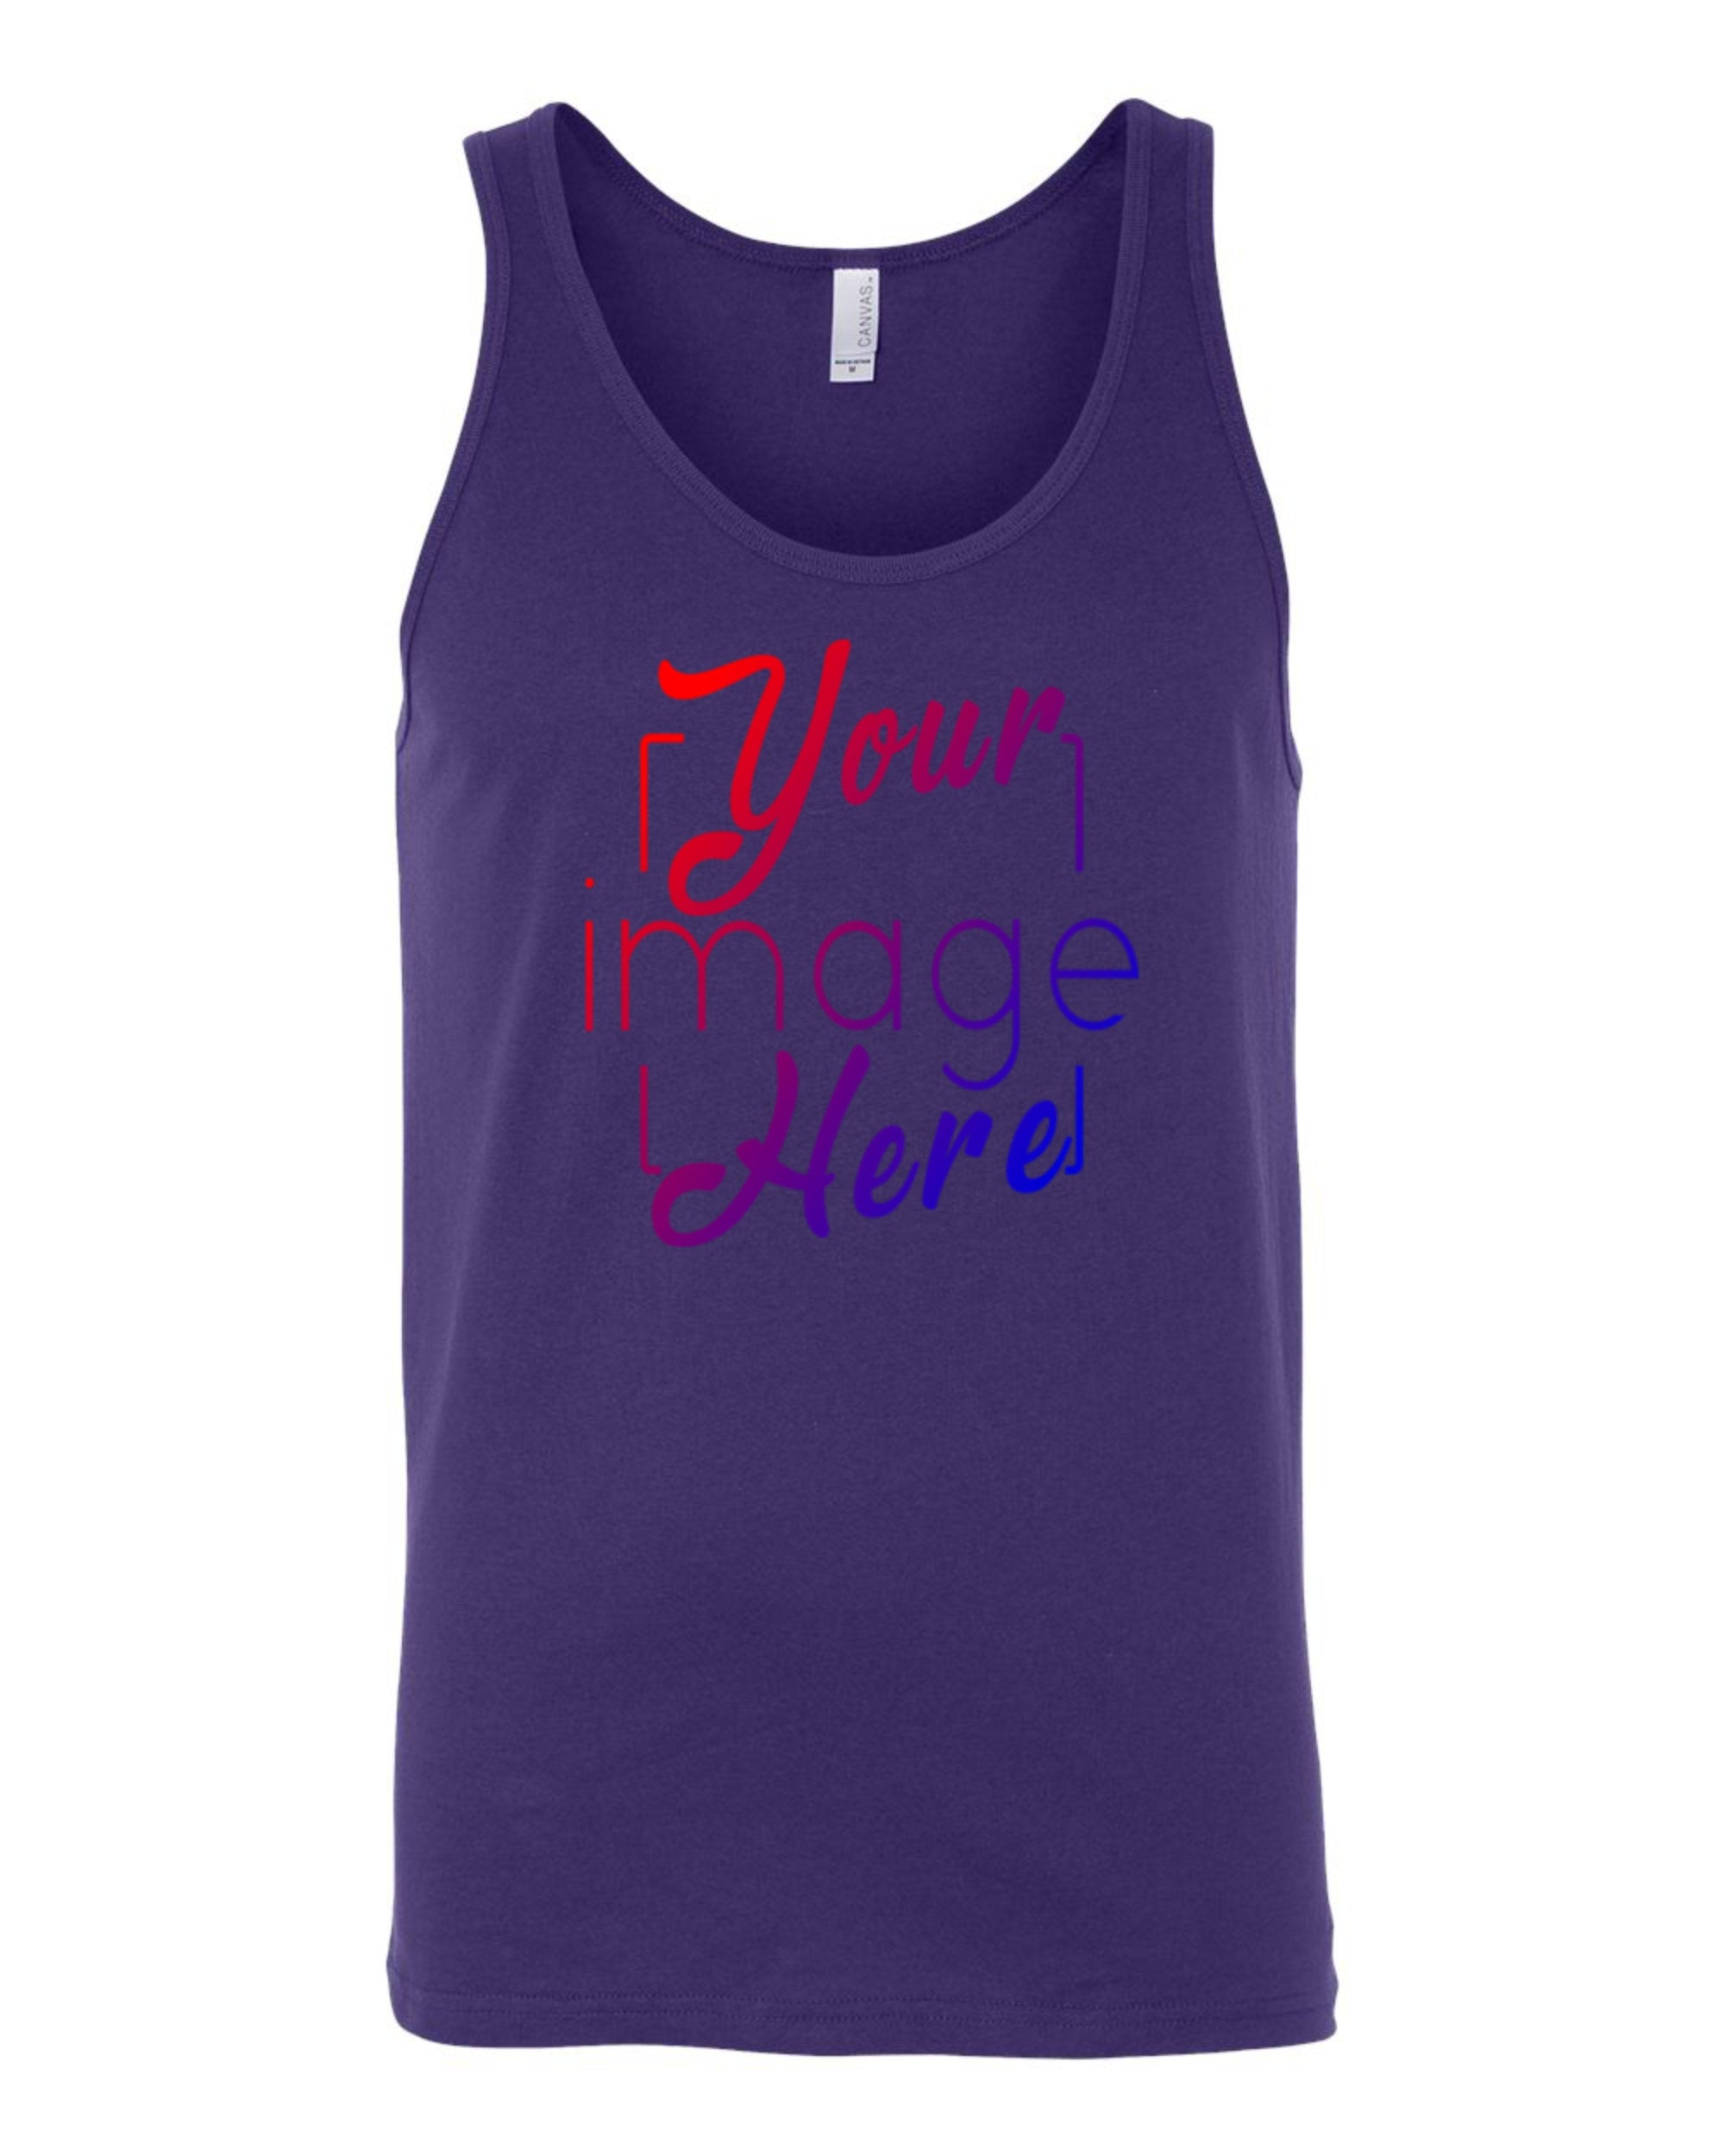 Flat Image of a Bella Canvas Tank Top for Custom Printing